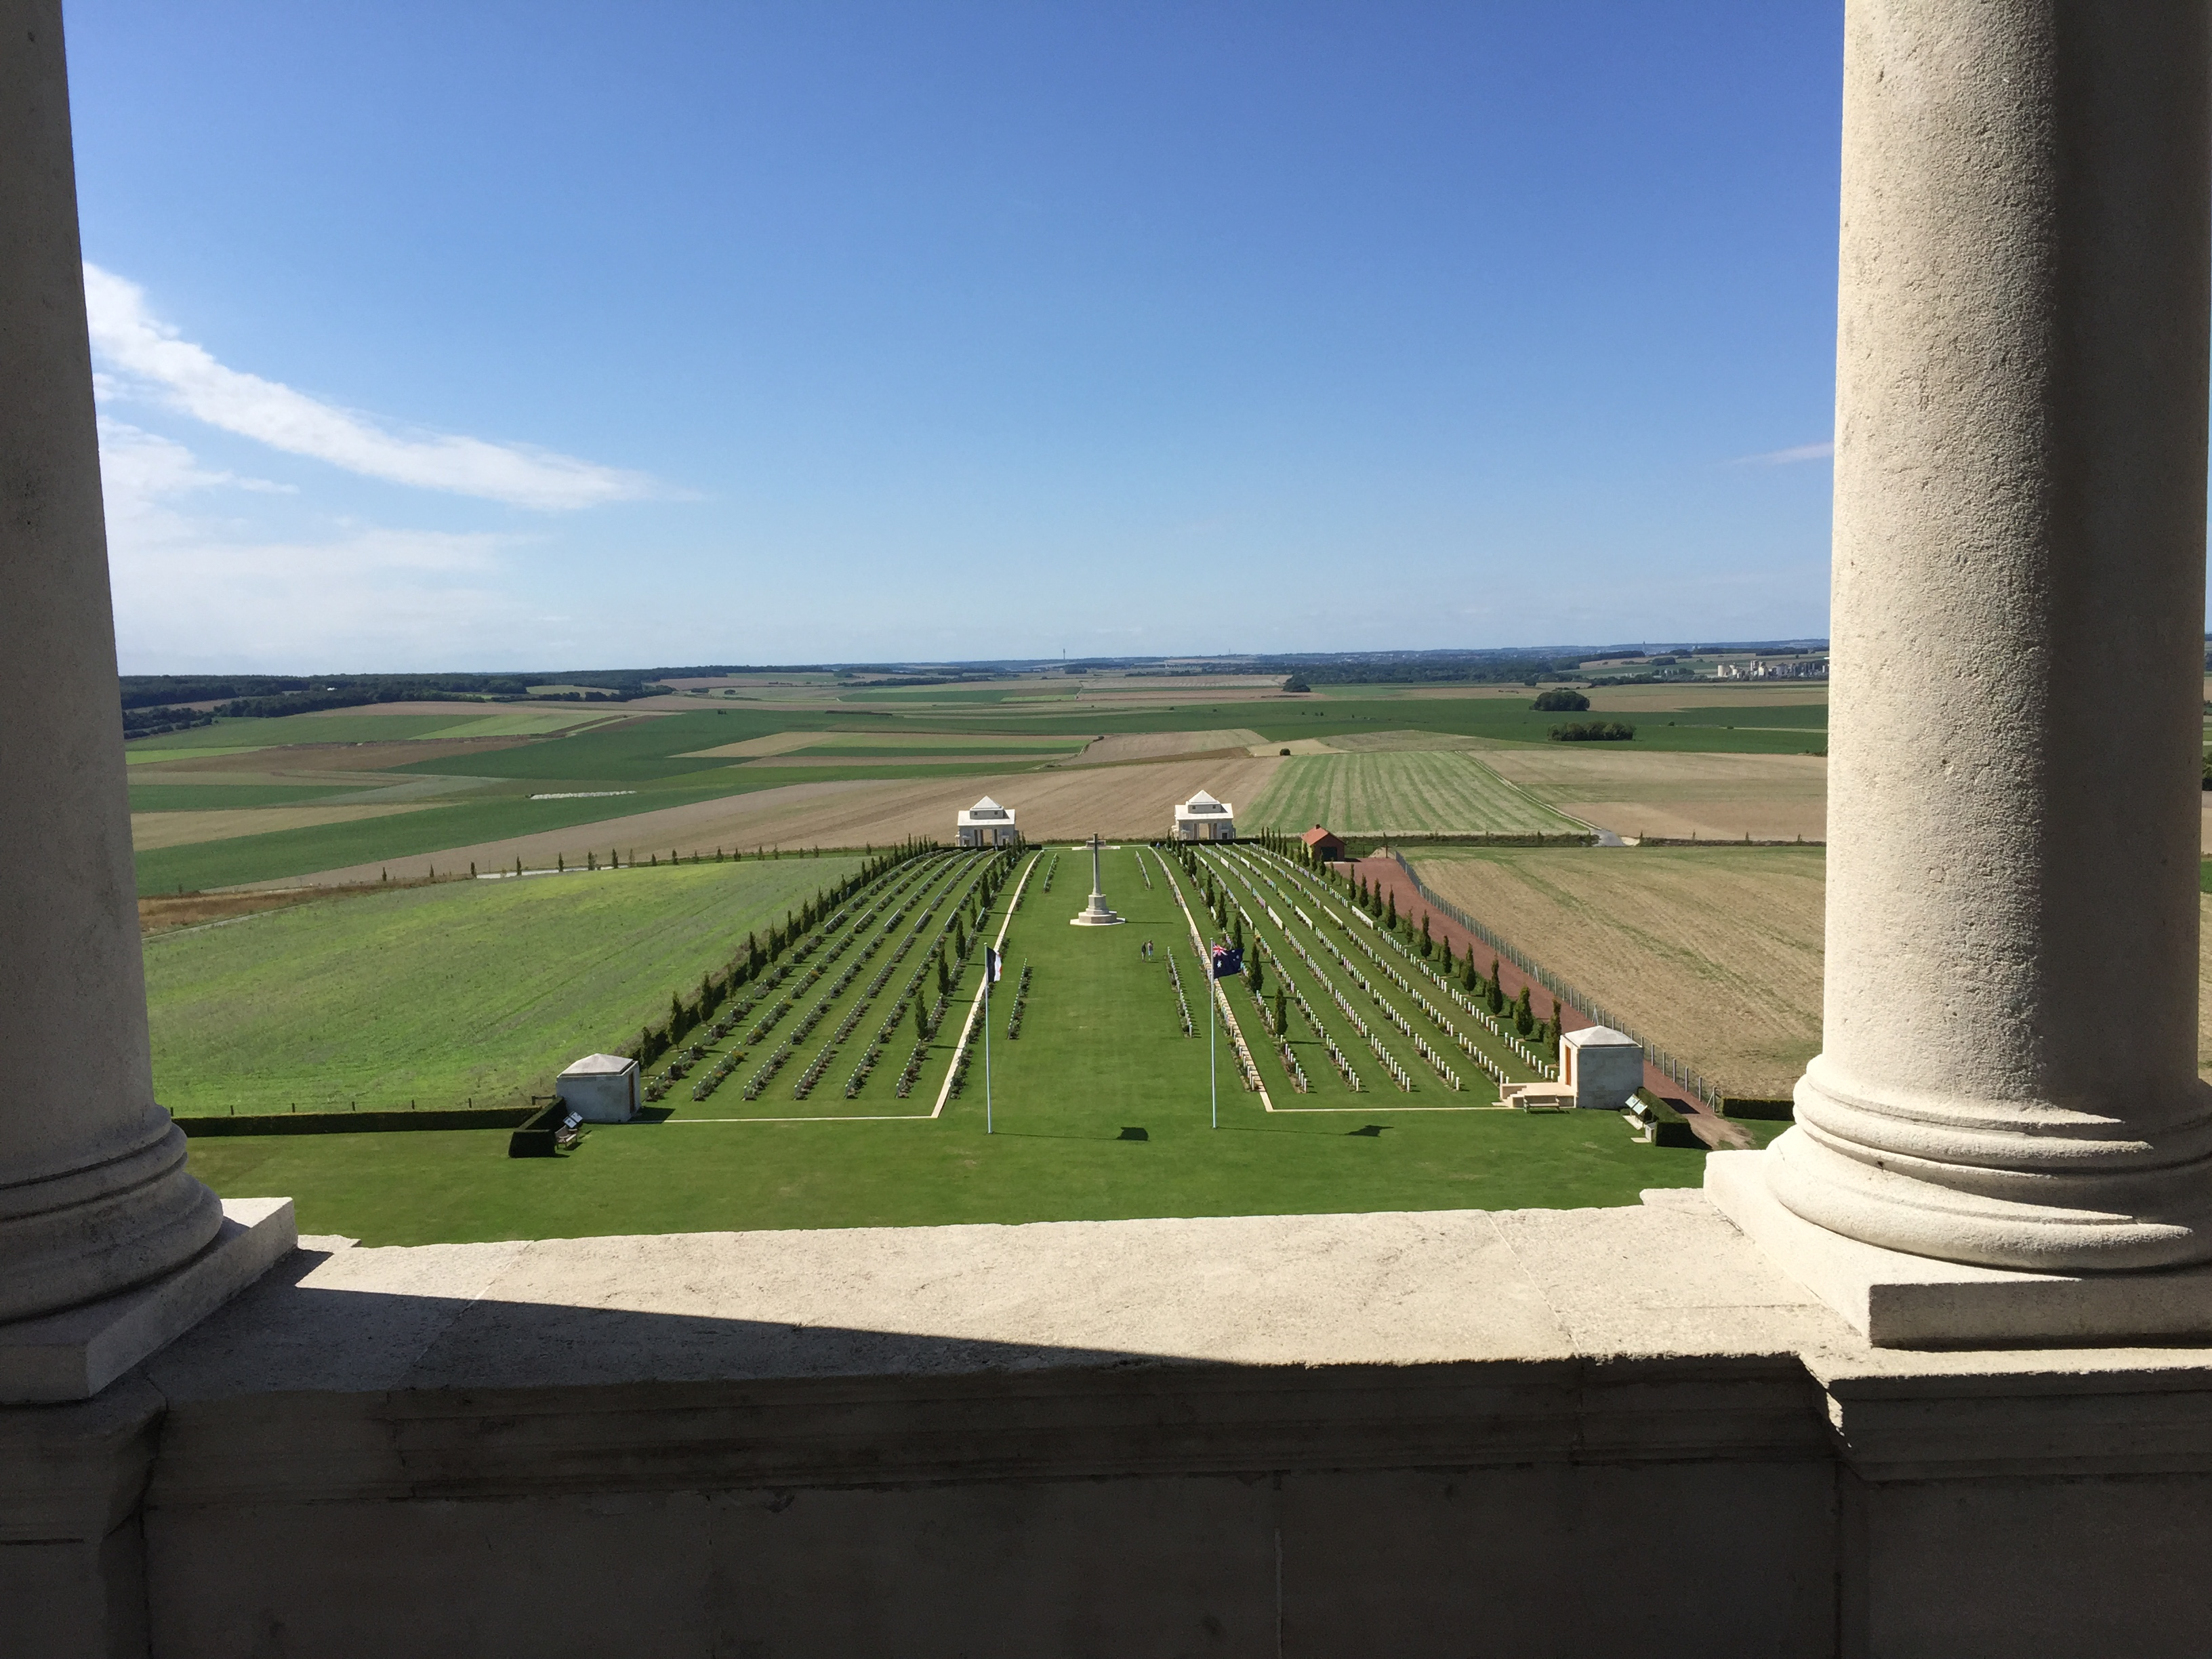 The view looking out on a sunny day with blue skies over rolling hills. In the foreground are rows of headstones on a lawn.